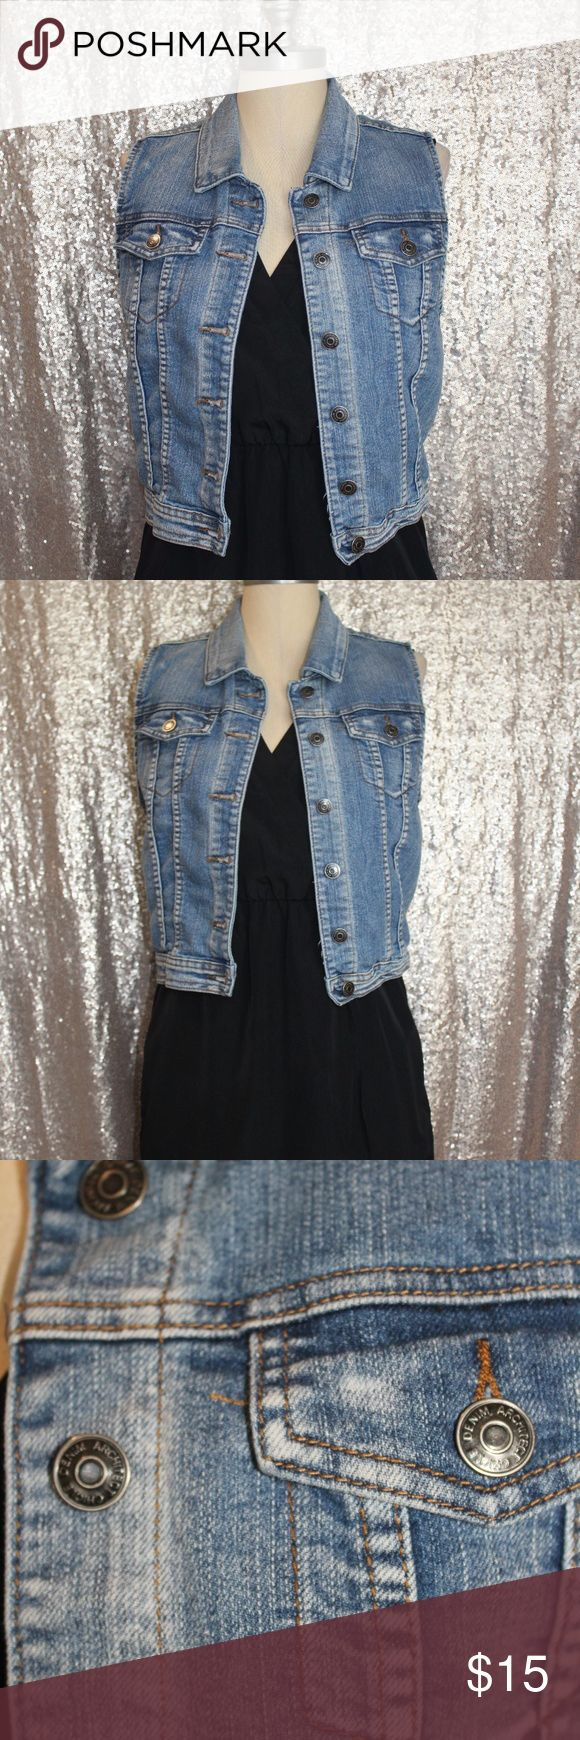 Sleeveless Jean Jacket Preowned Sleeveless Jean Jacket.  Size: L Chiqle Jackets & Coats Jean Jackets